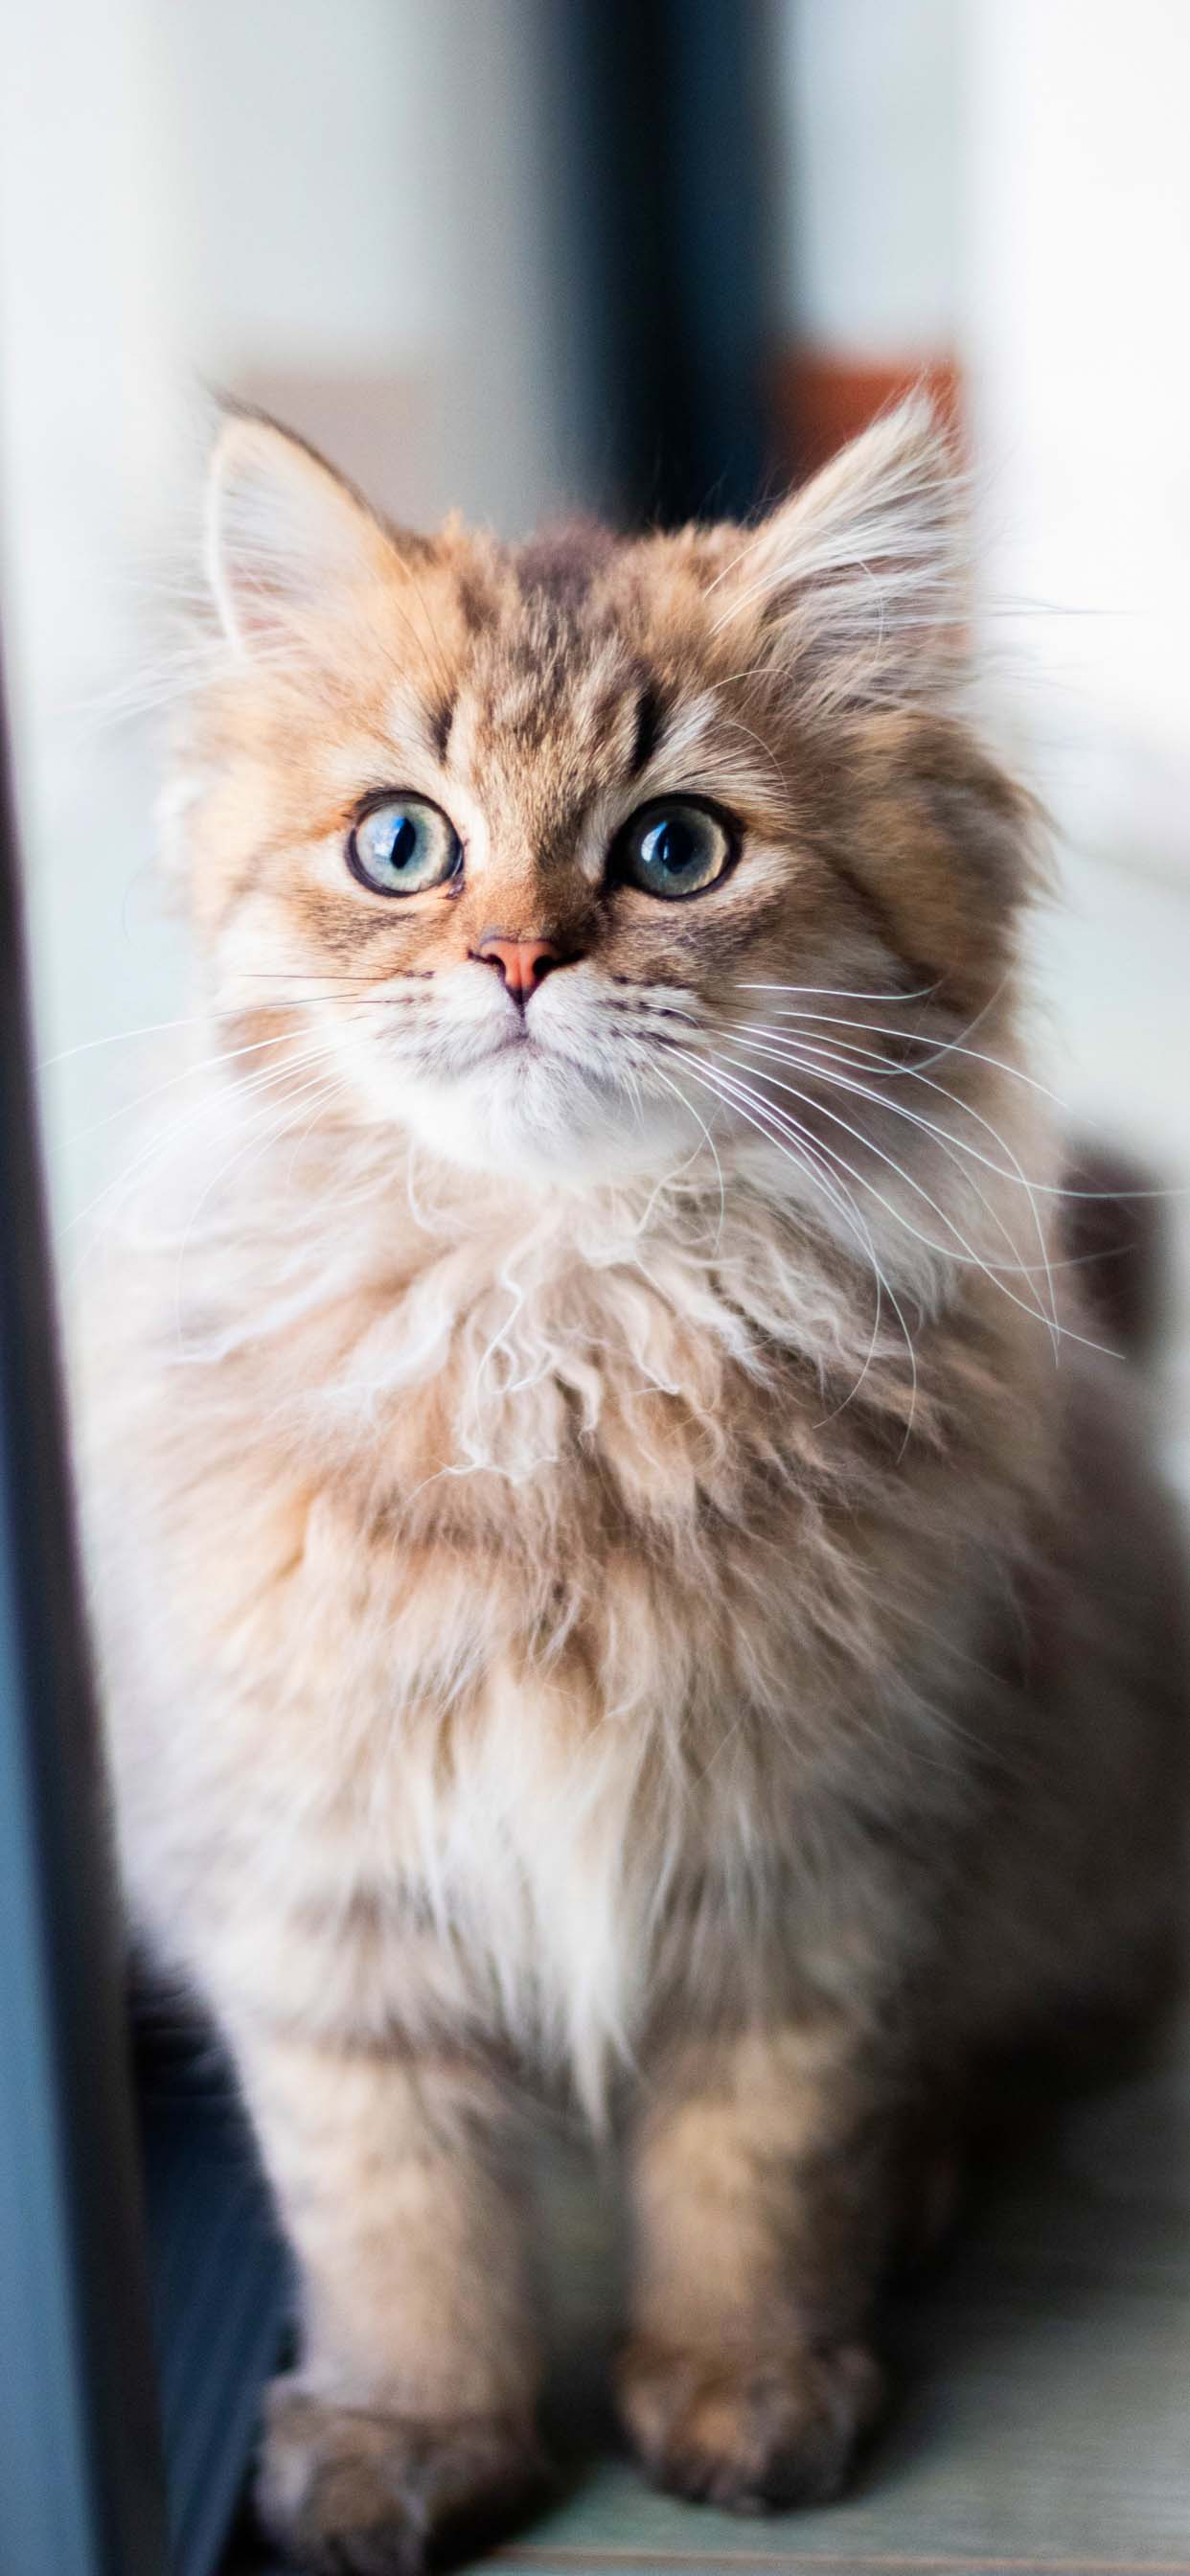 Cat wallpapers for iPhone XS Max - Beautiful fluffy kitten, young cat